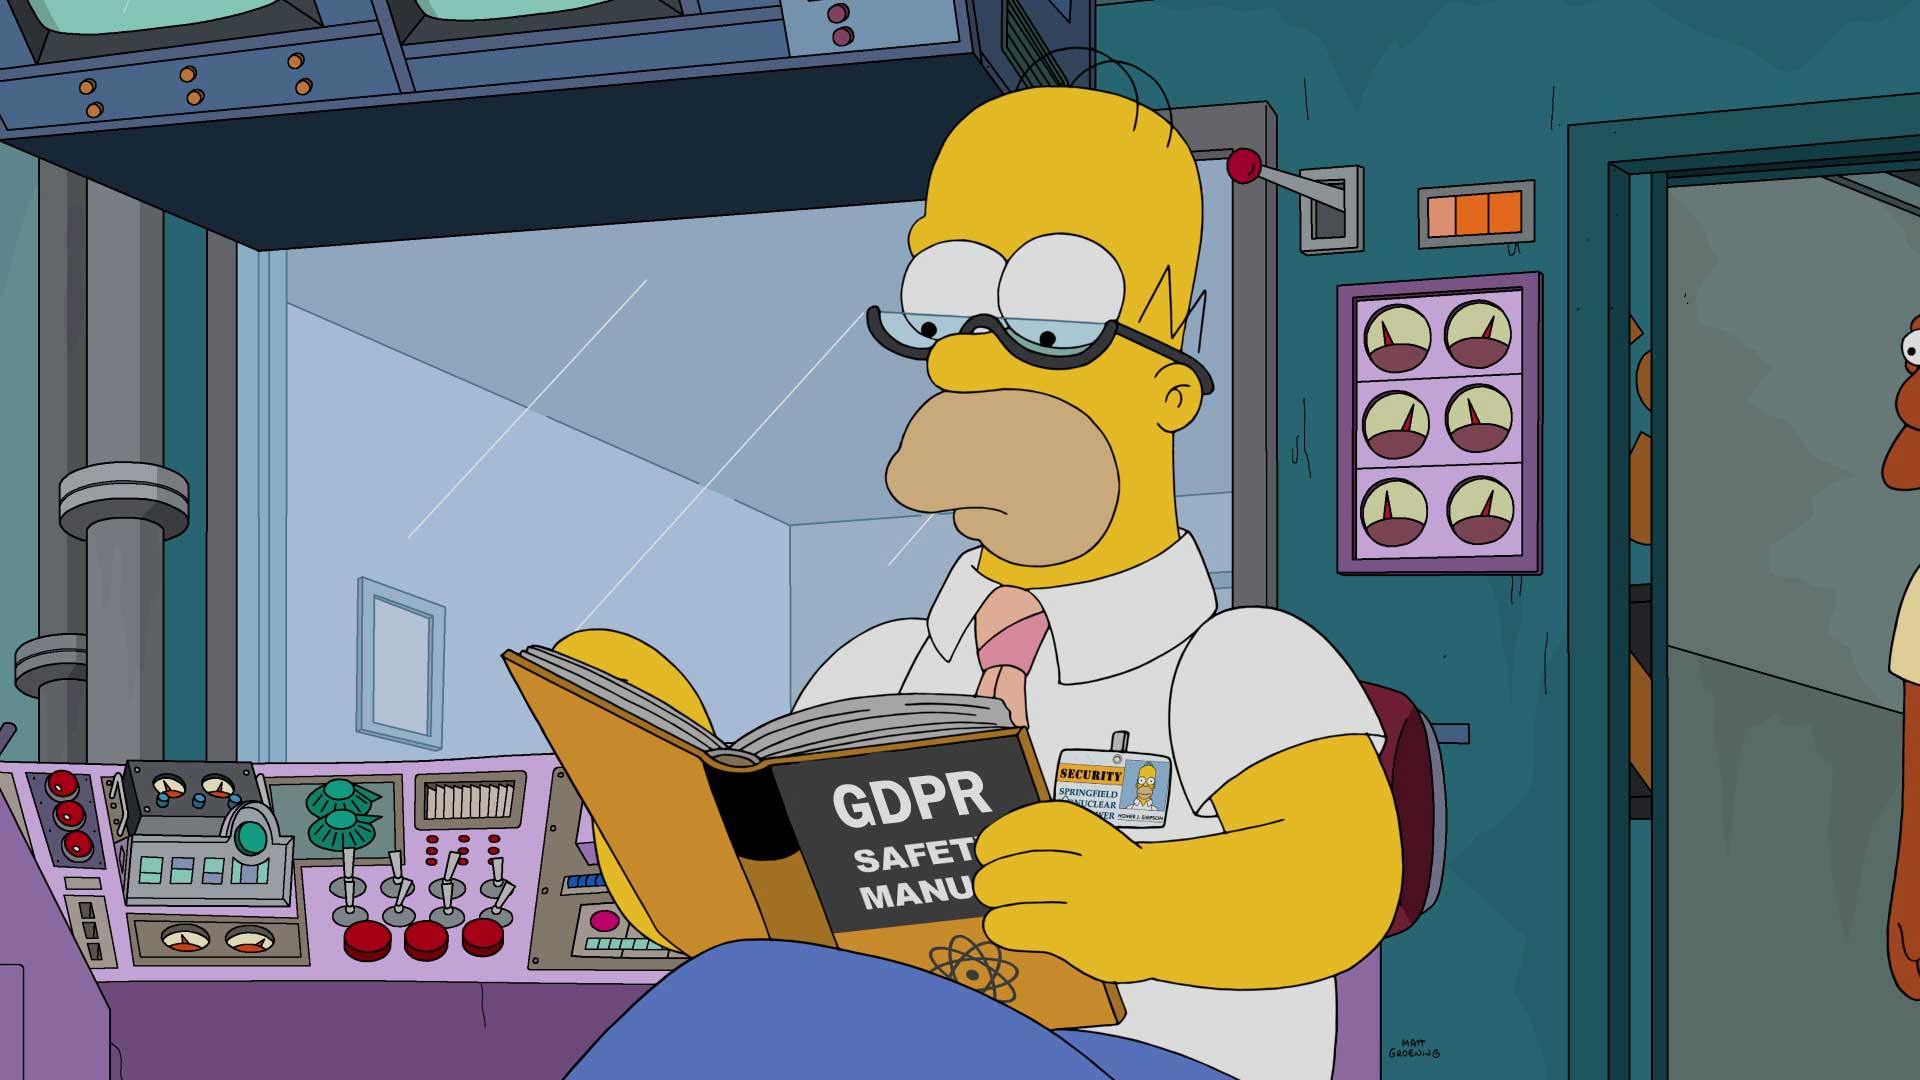 """Homer Simpson sits reading a book titled """"GDPR Safety Manual."""""""